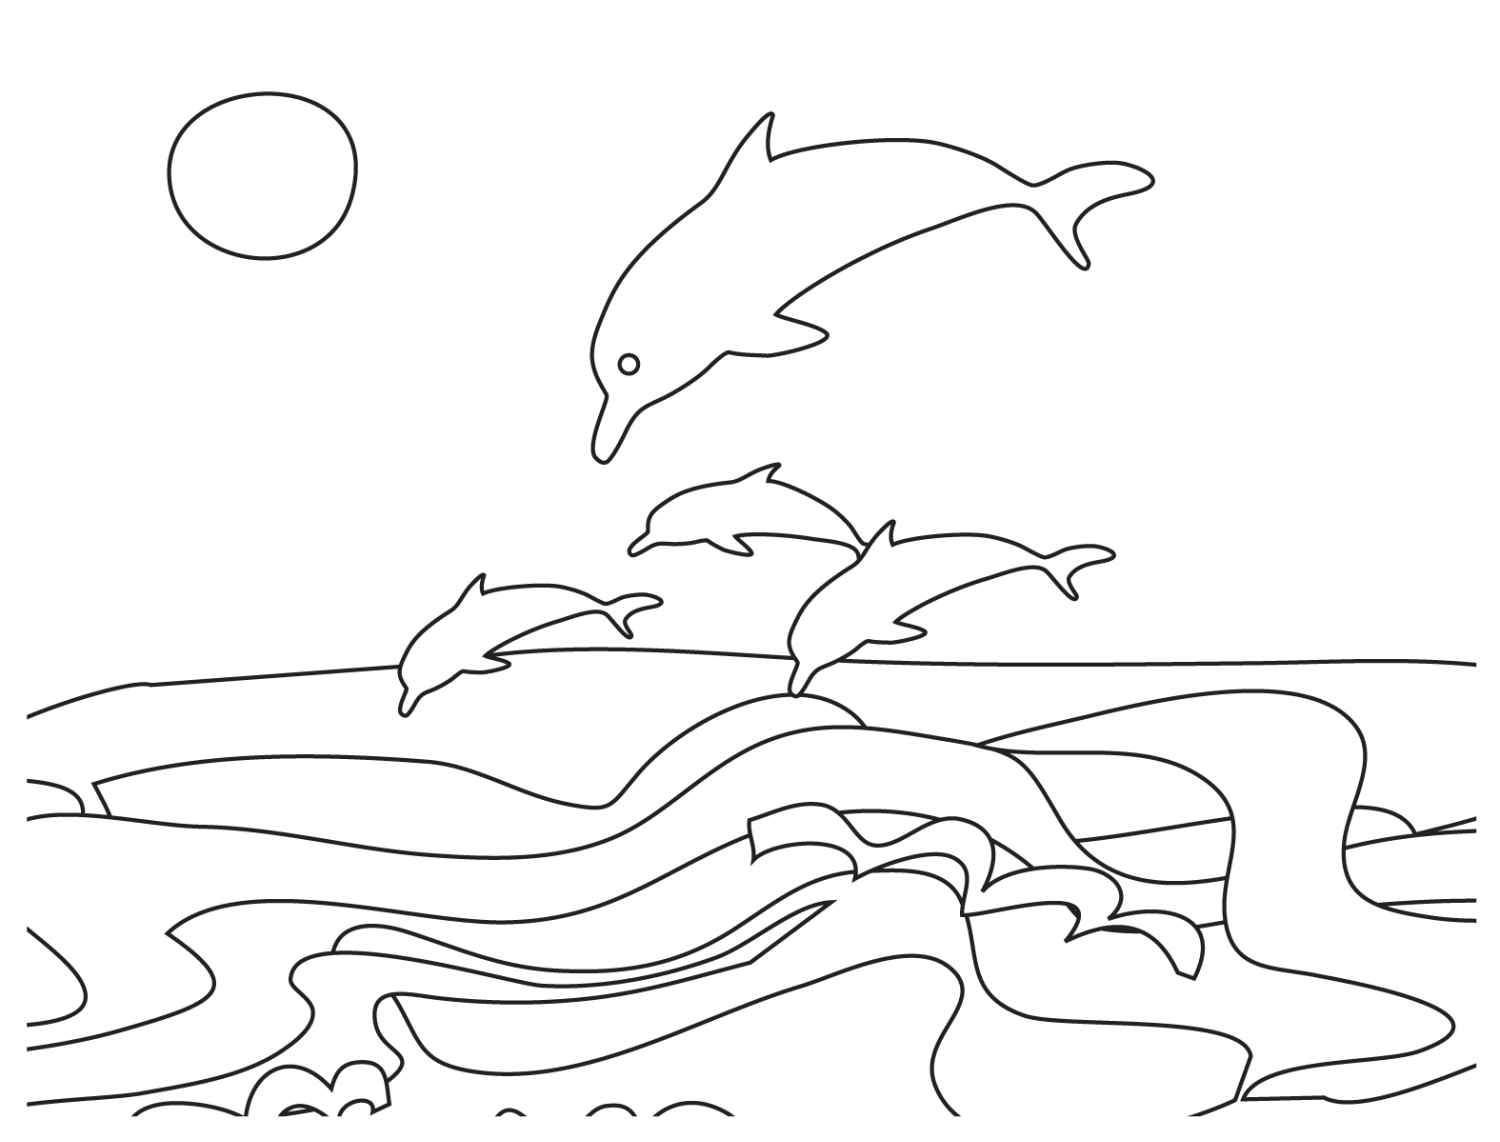 beach scene coloring page - coloring pages of ocean scenes coloring home